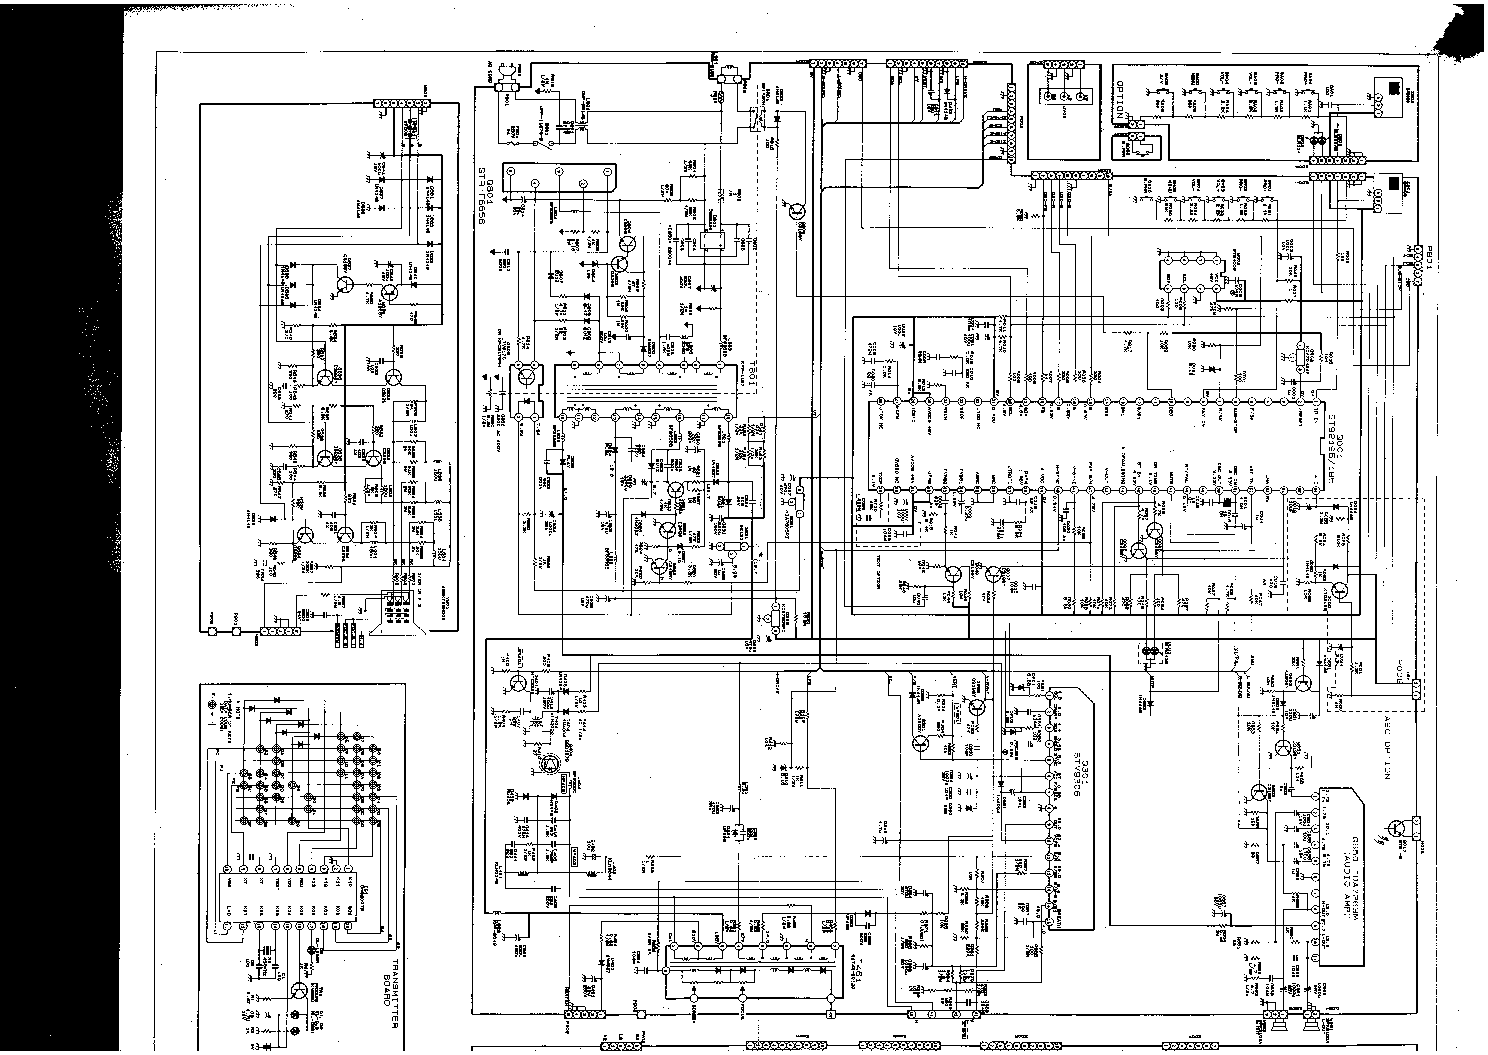 t v circuit diagram free download manual e books Electronic Circuit Diagram Software Free t v circuit diagram free download